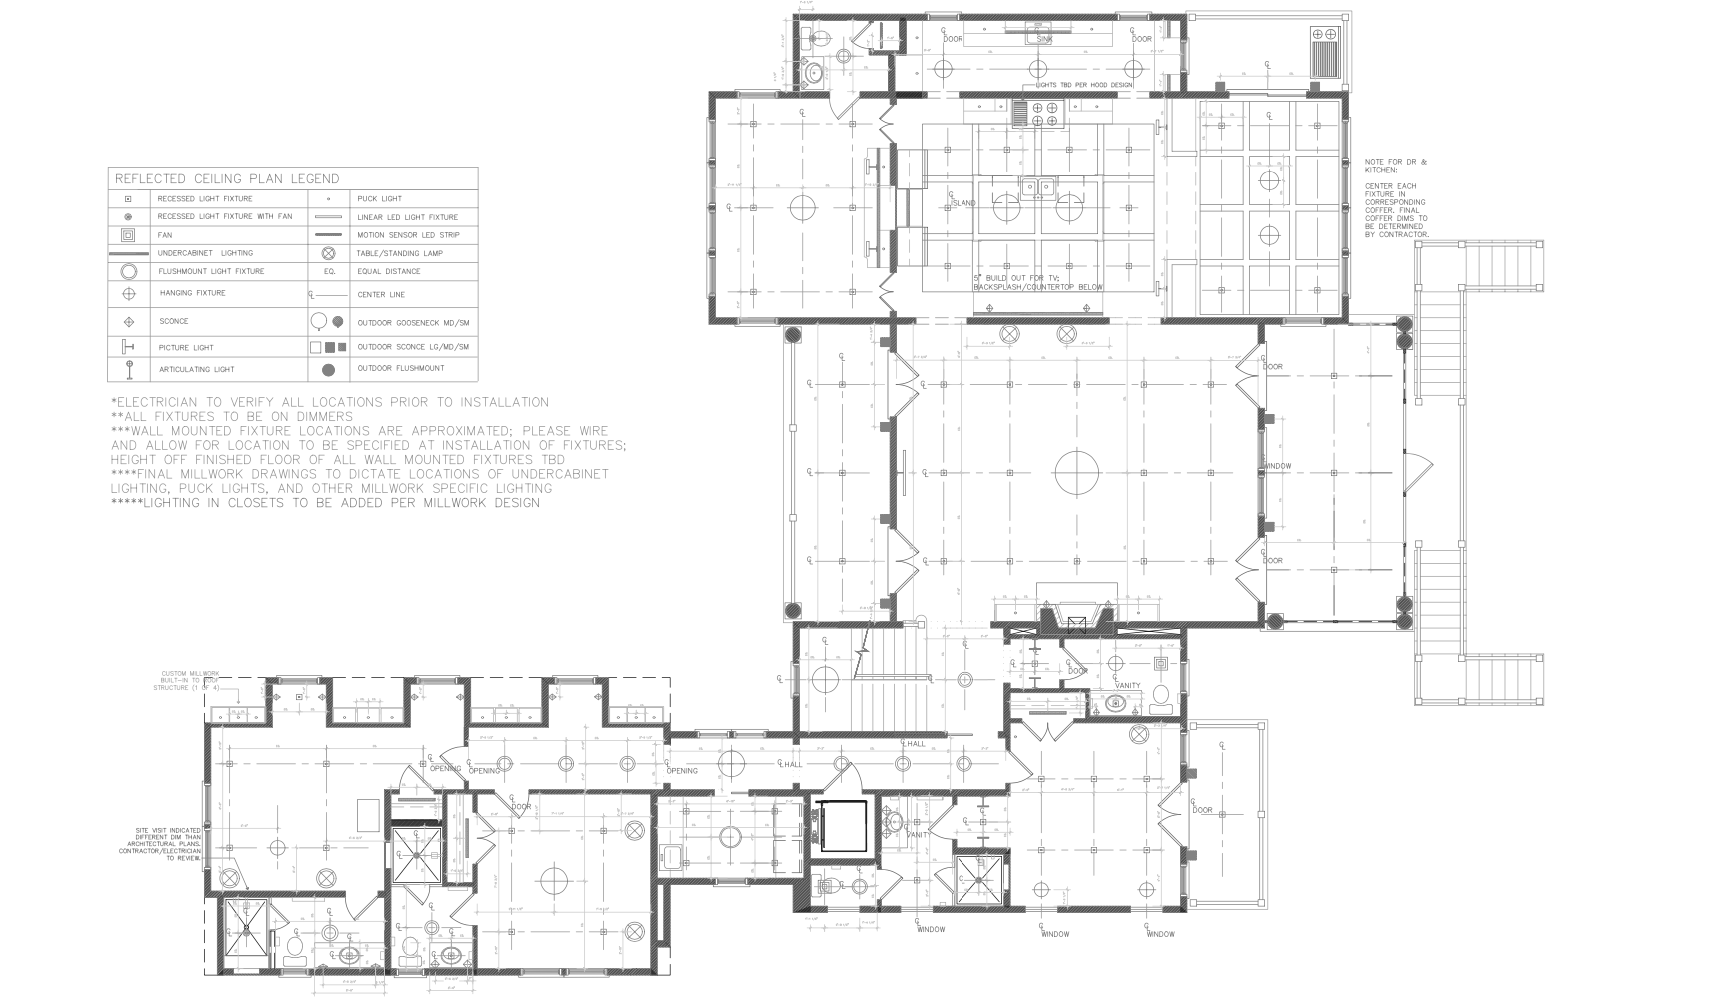 reflected ceiling plan large first floor home kingston RI blakely interior design firm detailed